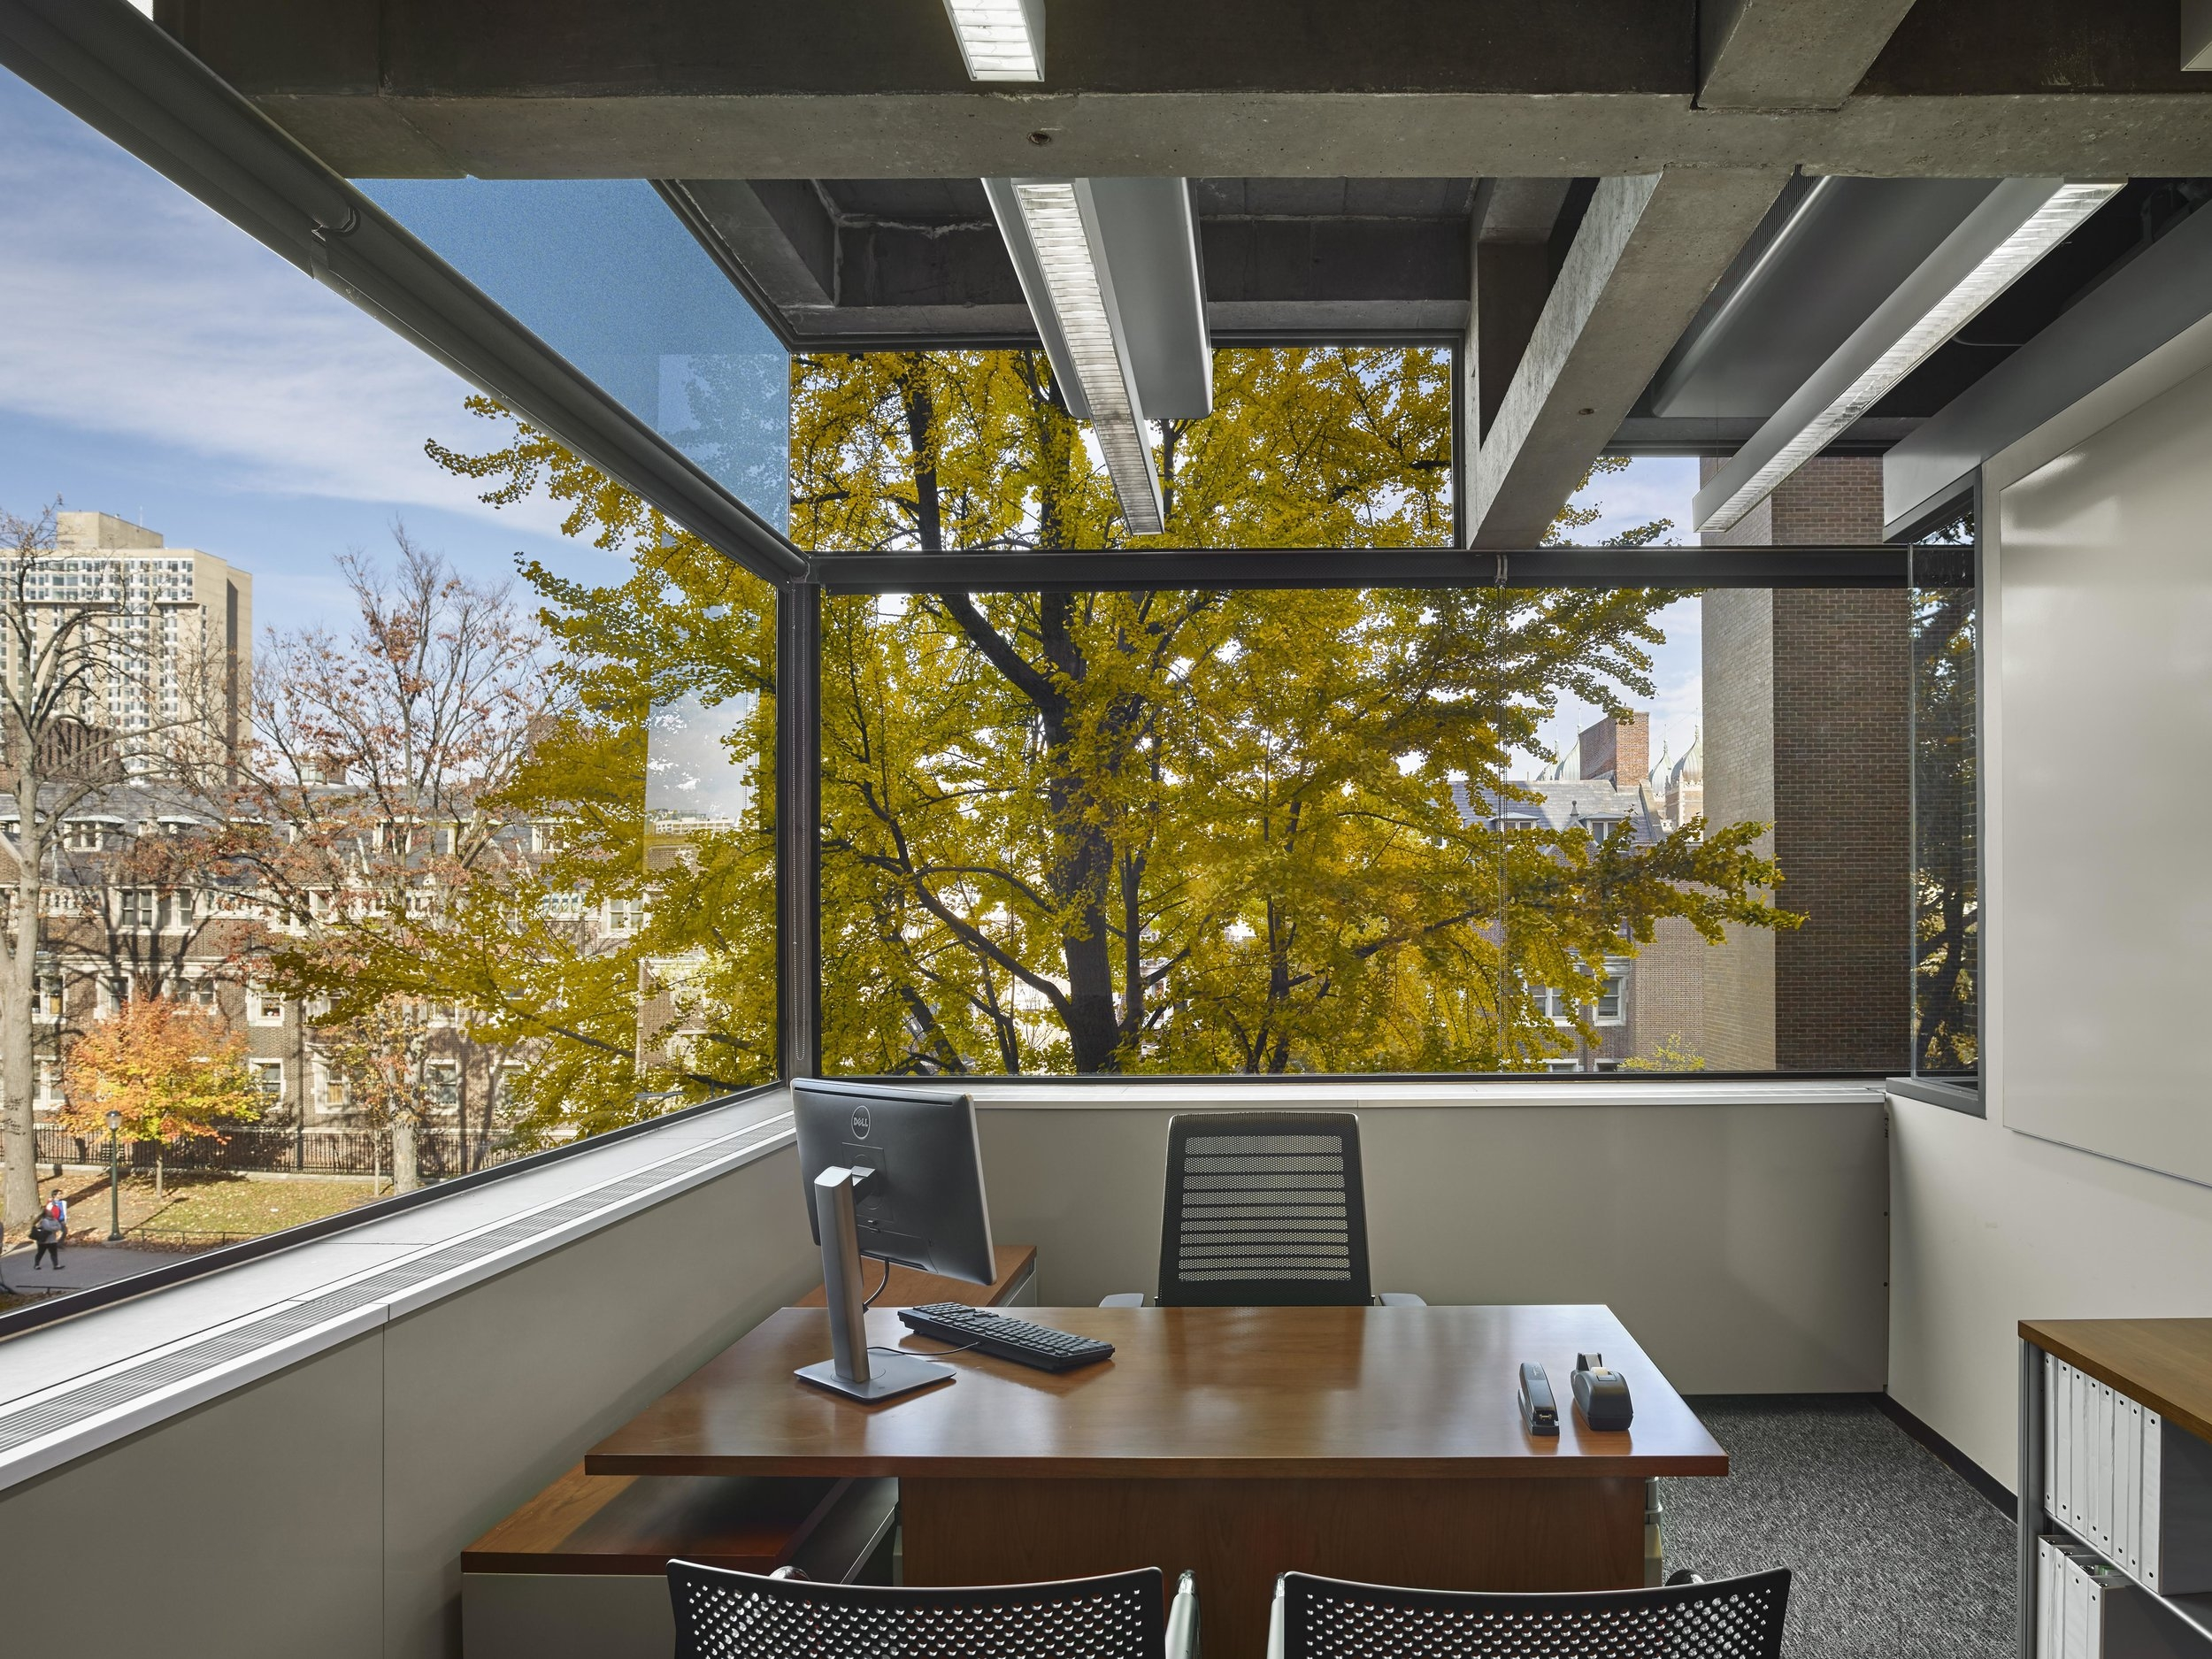 Richards Laboratory   - Renovation and transformation of Louis Kahn's signature 1961 research laboratory into a Center for Cognitive Neuroscience. 2011-2015,  The renovation transformed Richards into